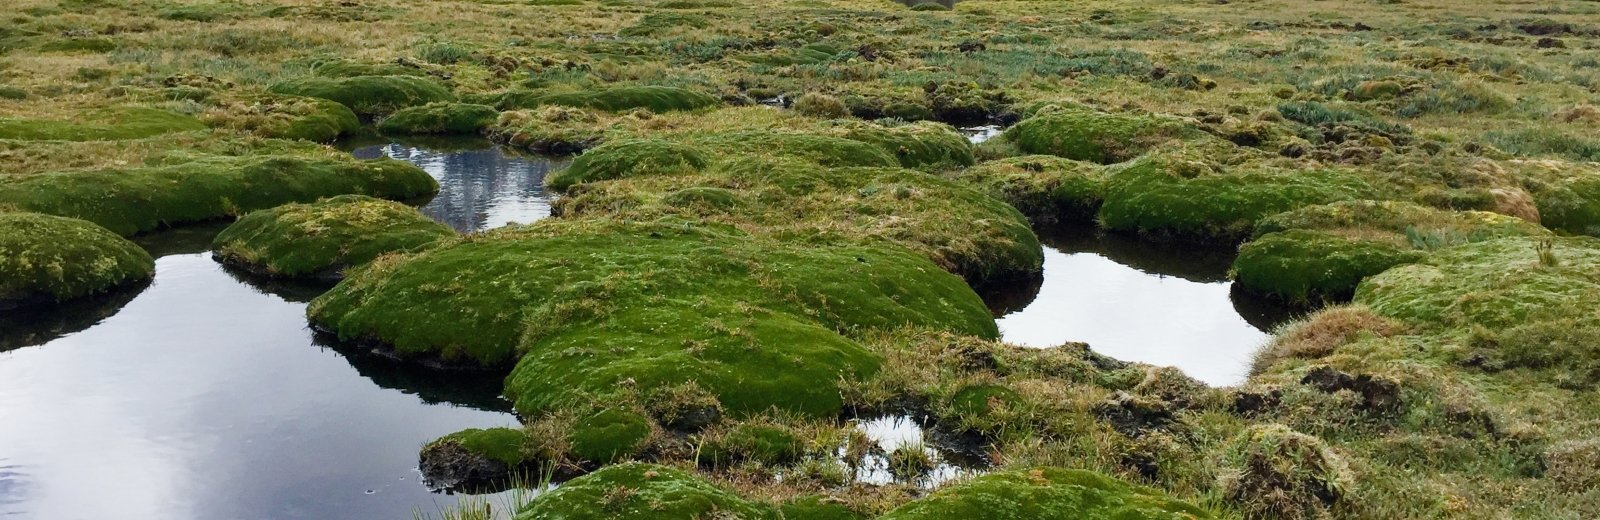 Peatlands and water.